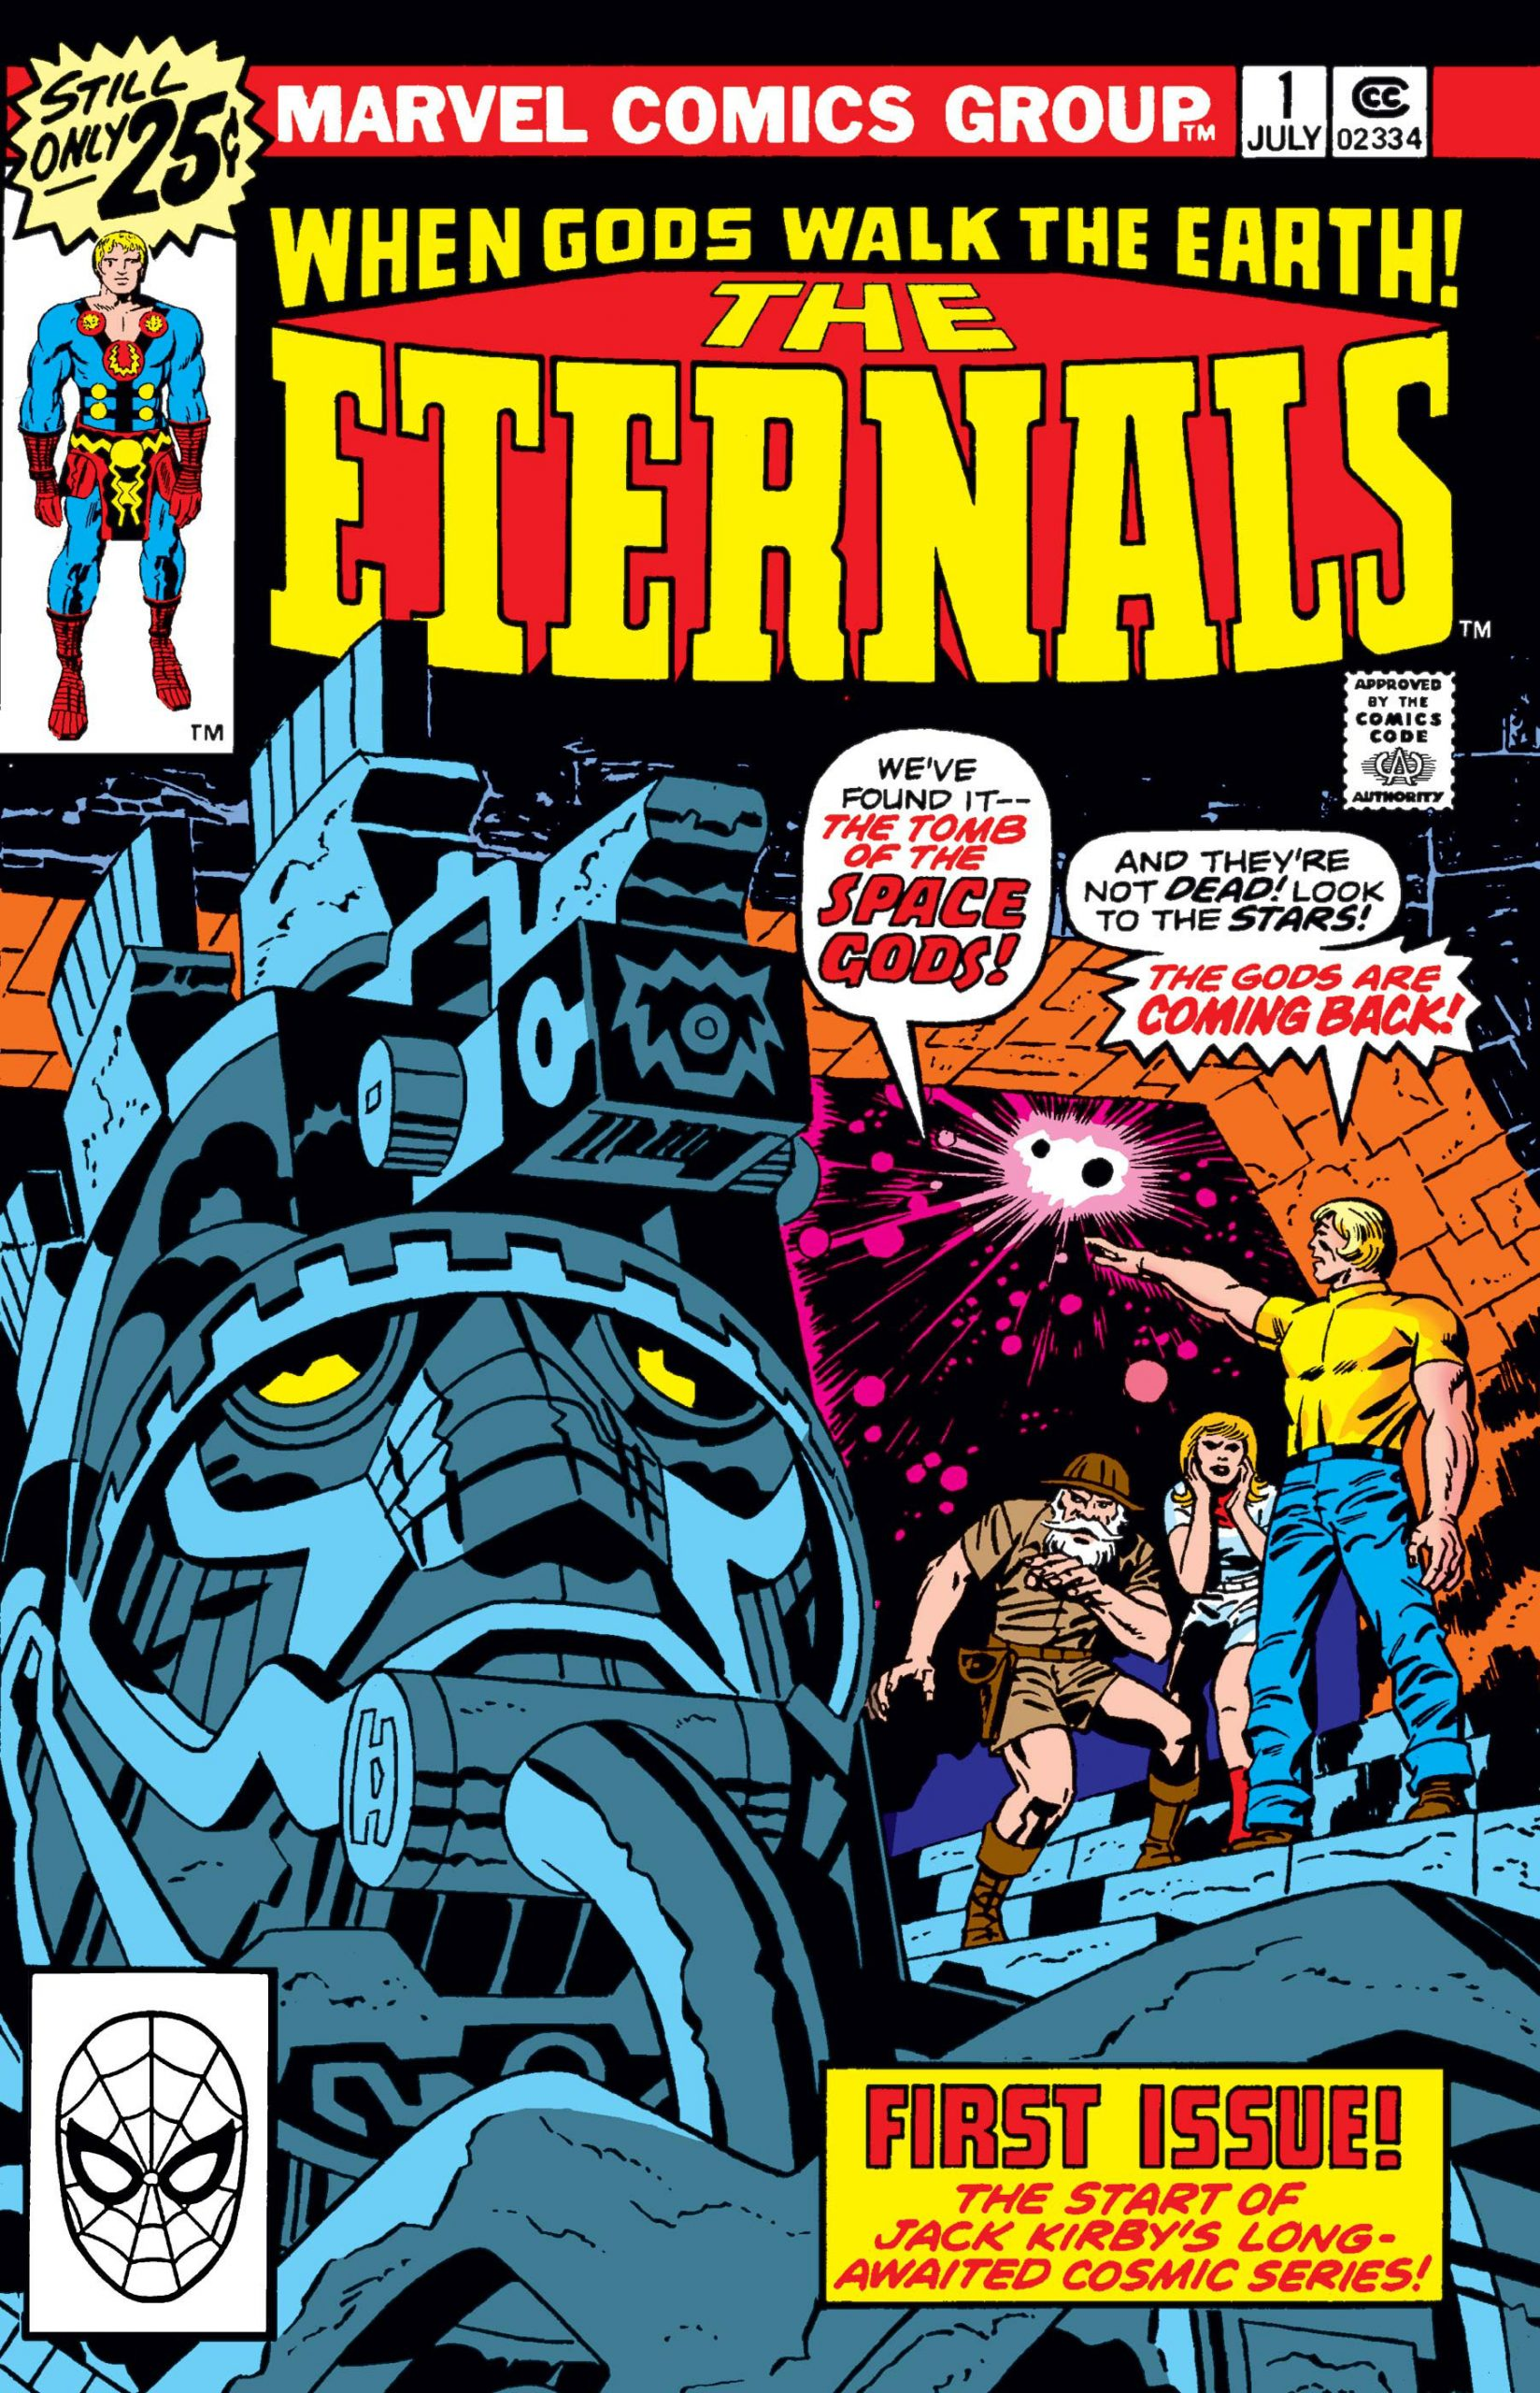 Eternals (1976) #1 by Jack Kirby on Marvel Unlimited